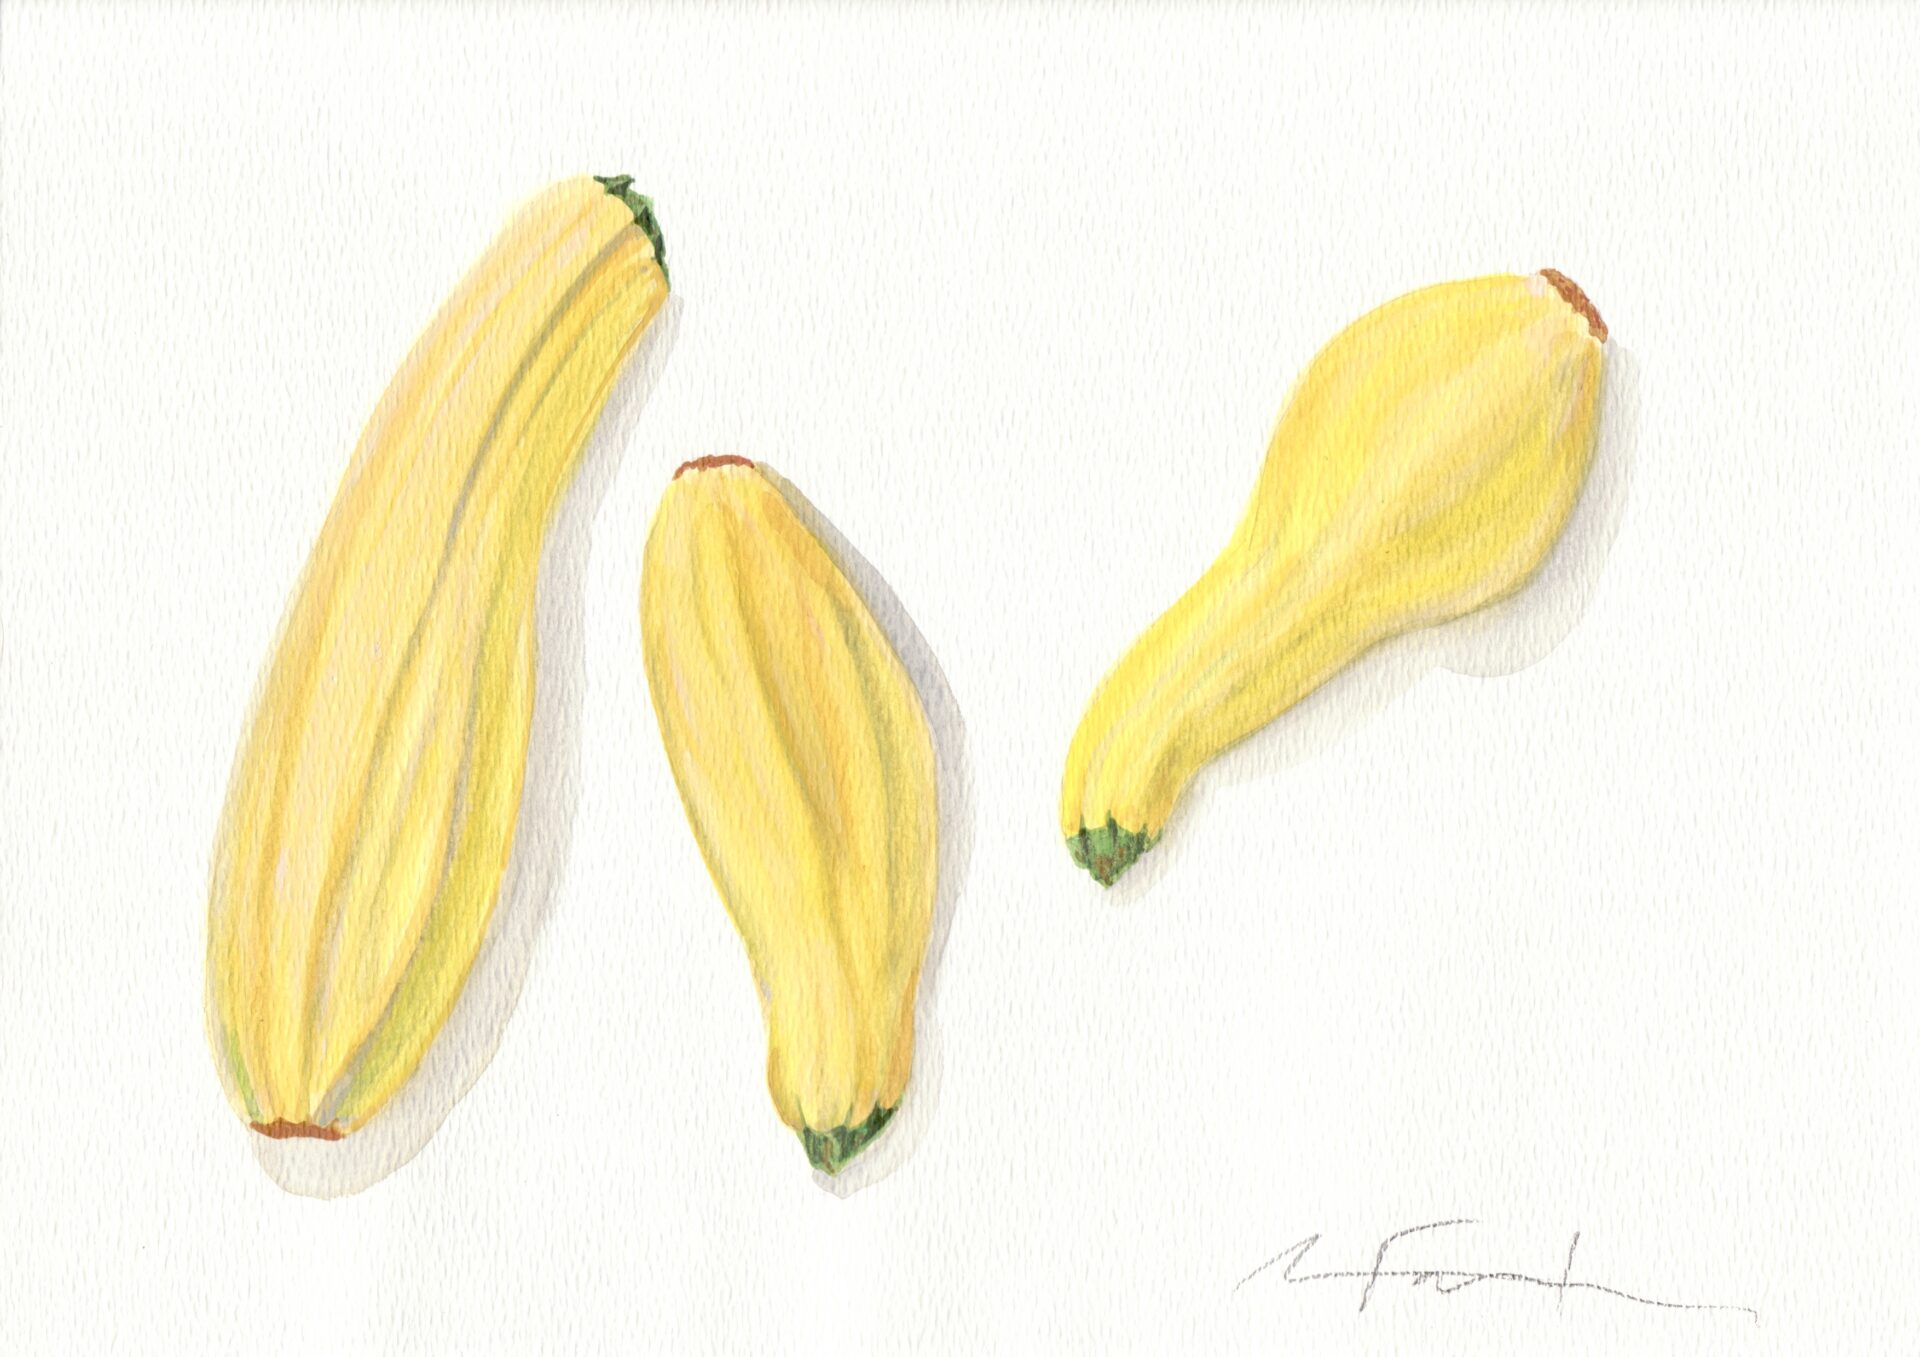 "Angela Faustina, Yellow squash watercolor study, 2016. Watercolor on paper, 12"" by 9""."